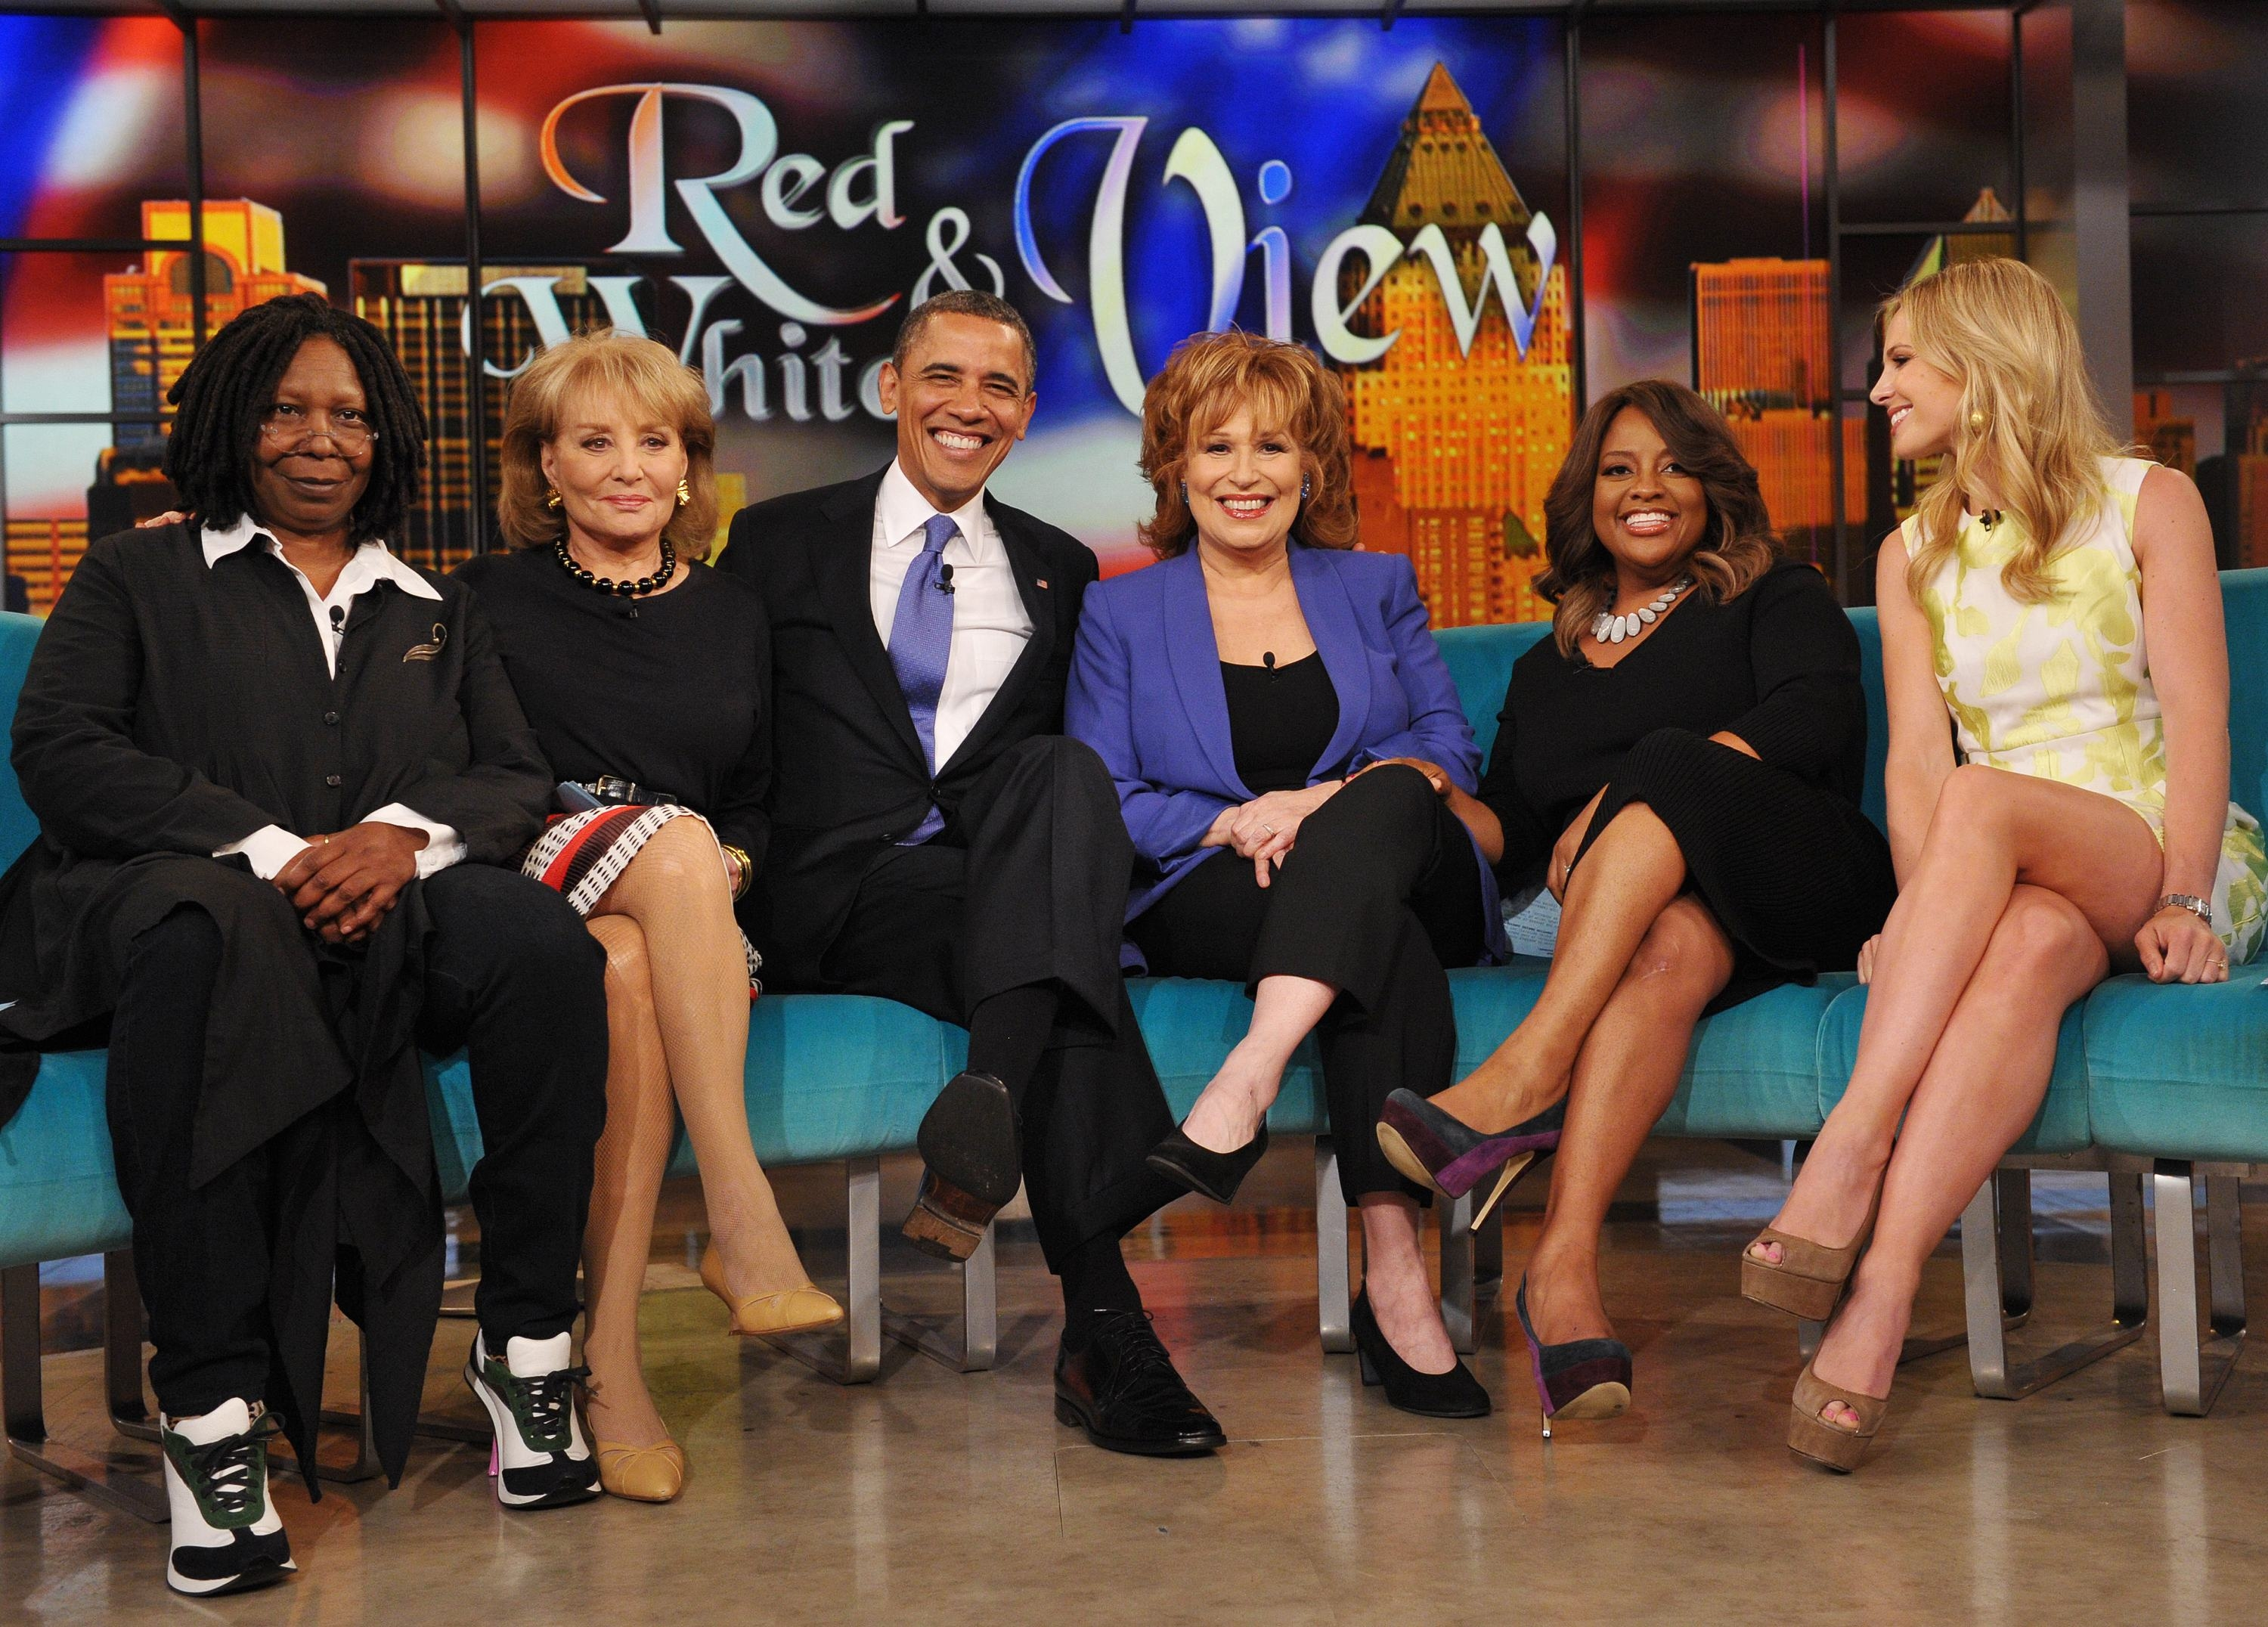 Today President Obama goes on the View, as part of a week-long appeal to women, including a commencement speech at Barnard College. Will it work or backfire?